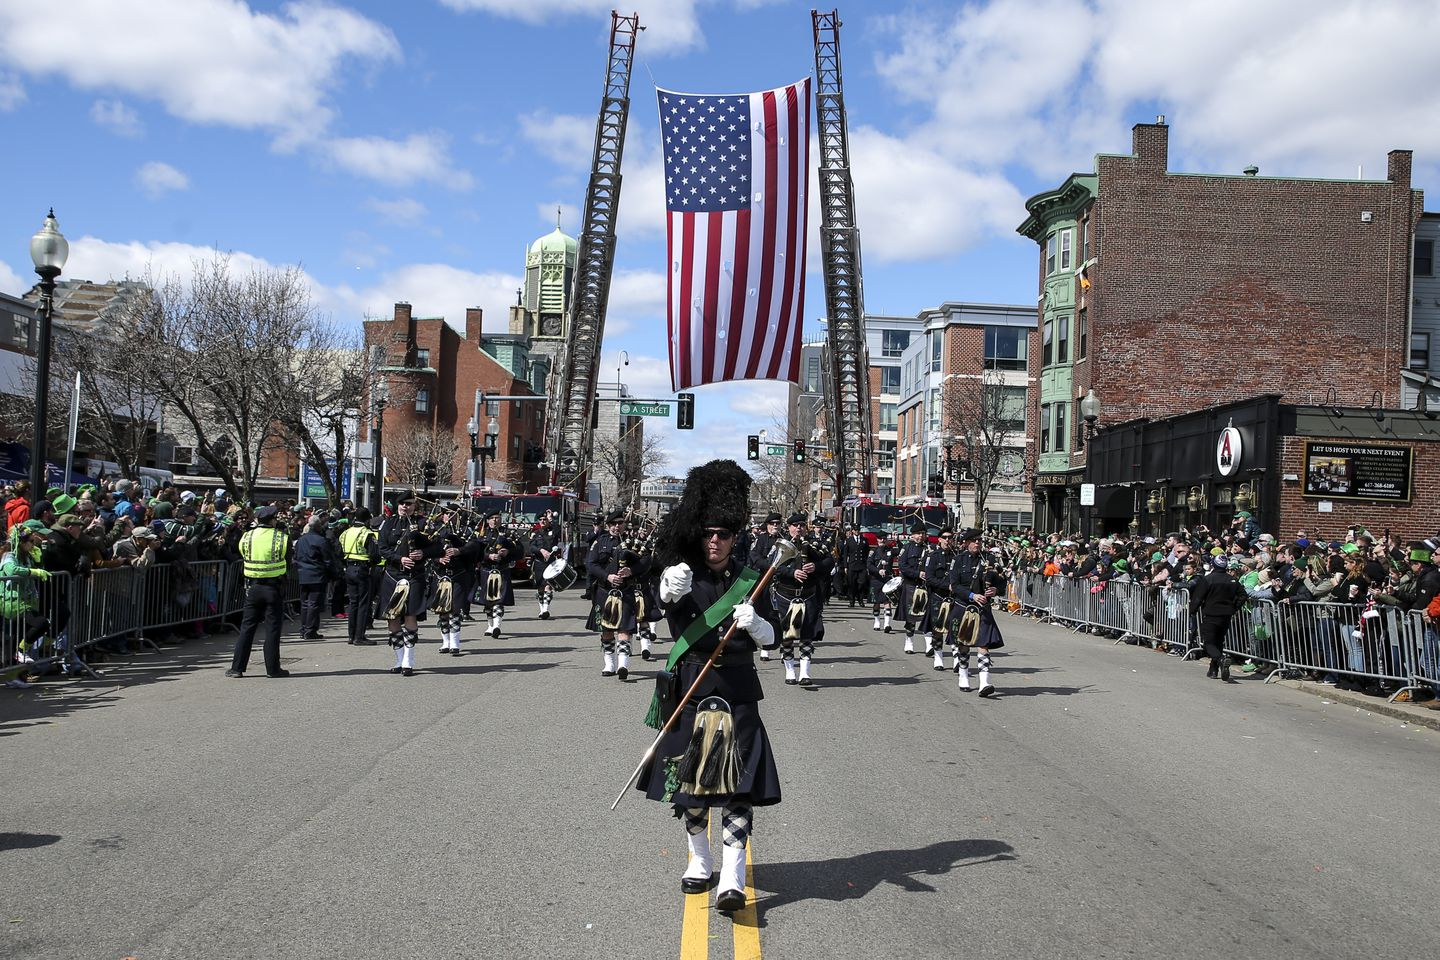 A pipes-and-drum band marches in the St. Patrick's Day parade in South Boston last year.